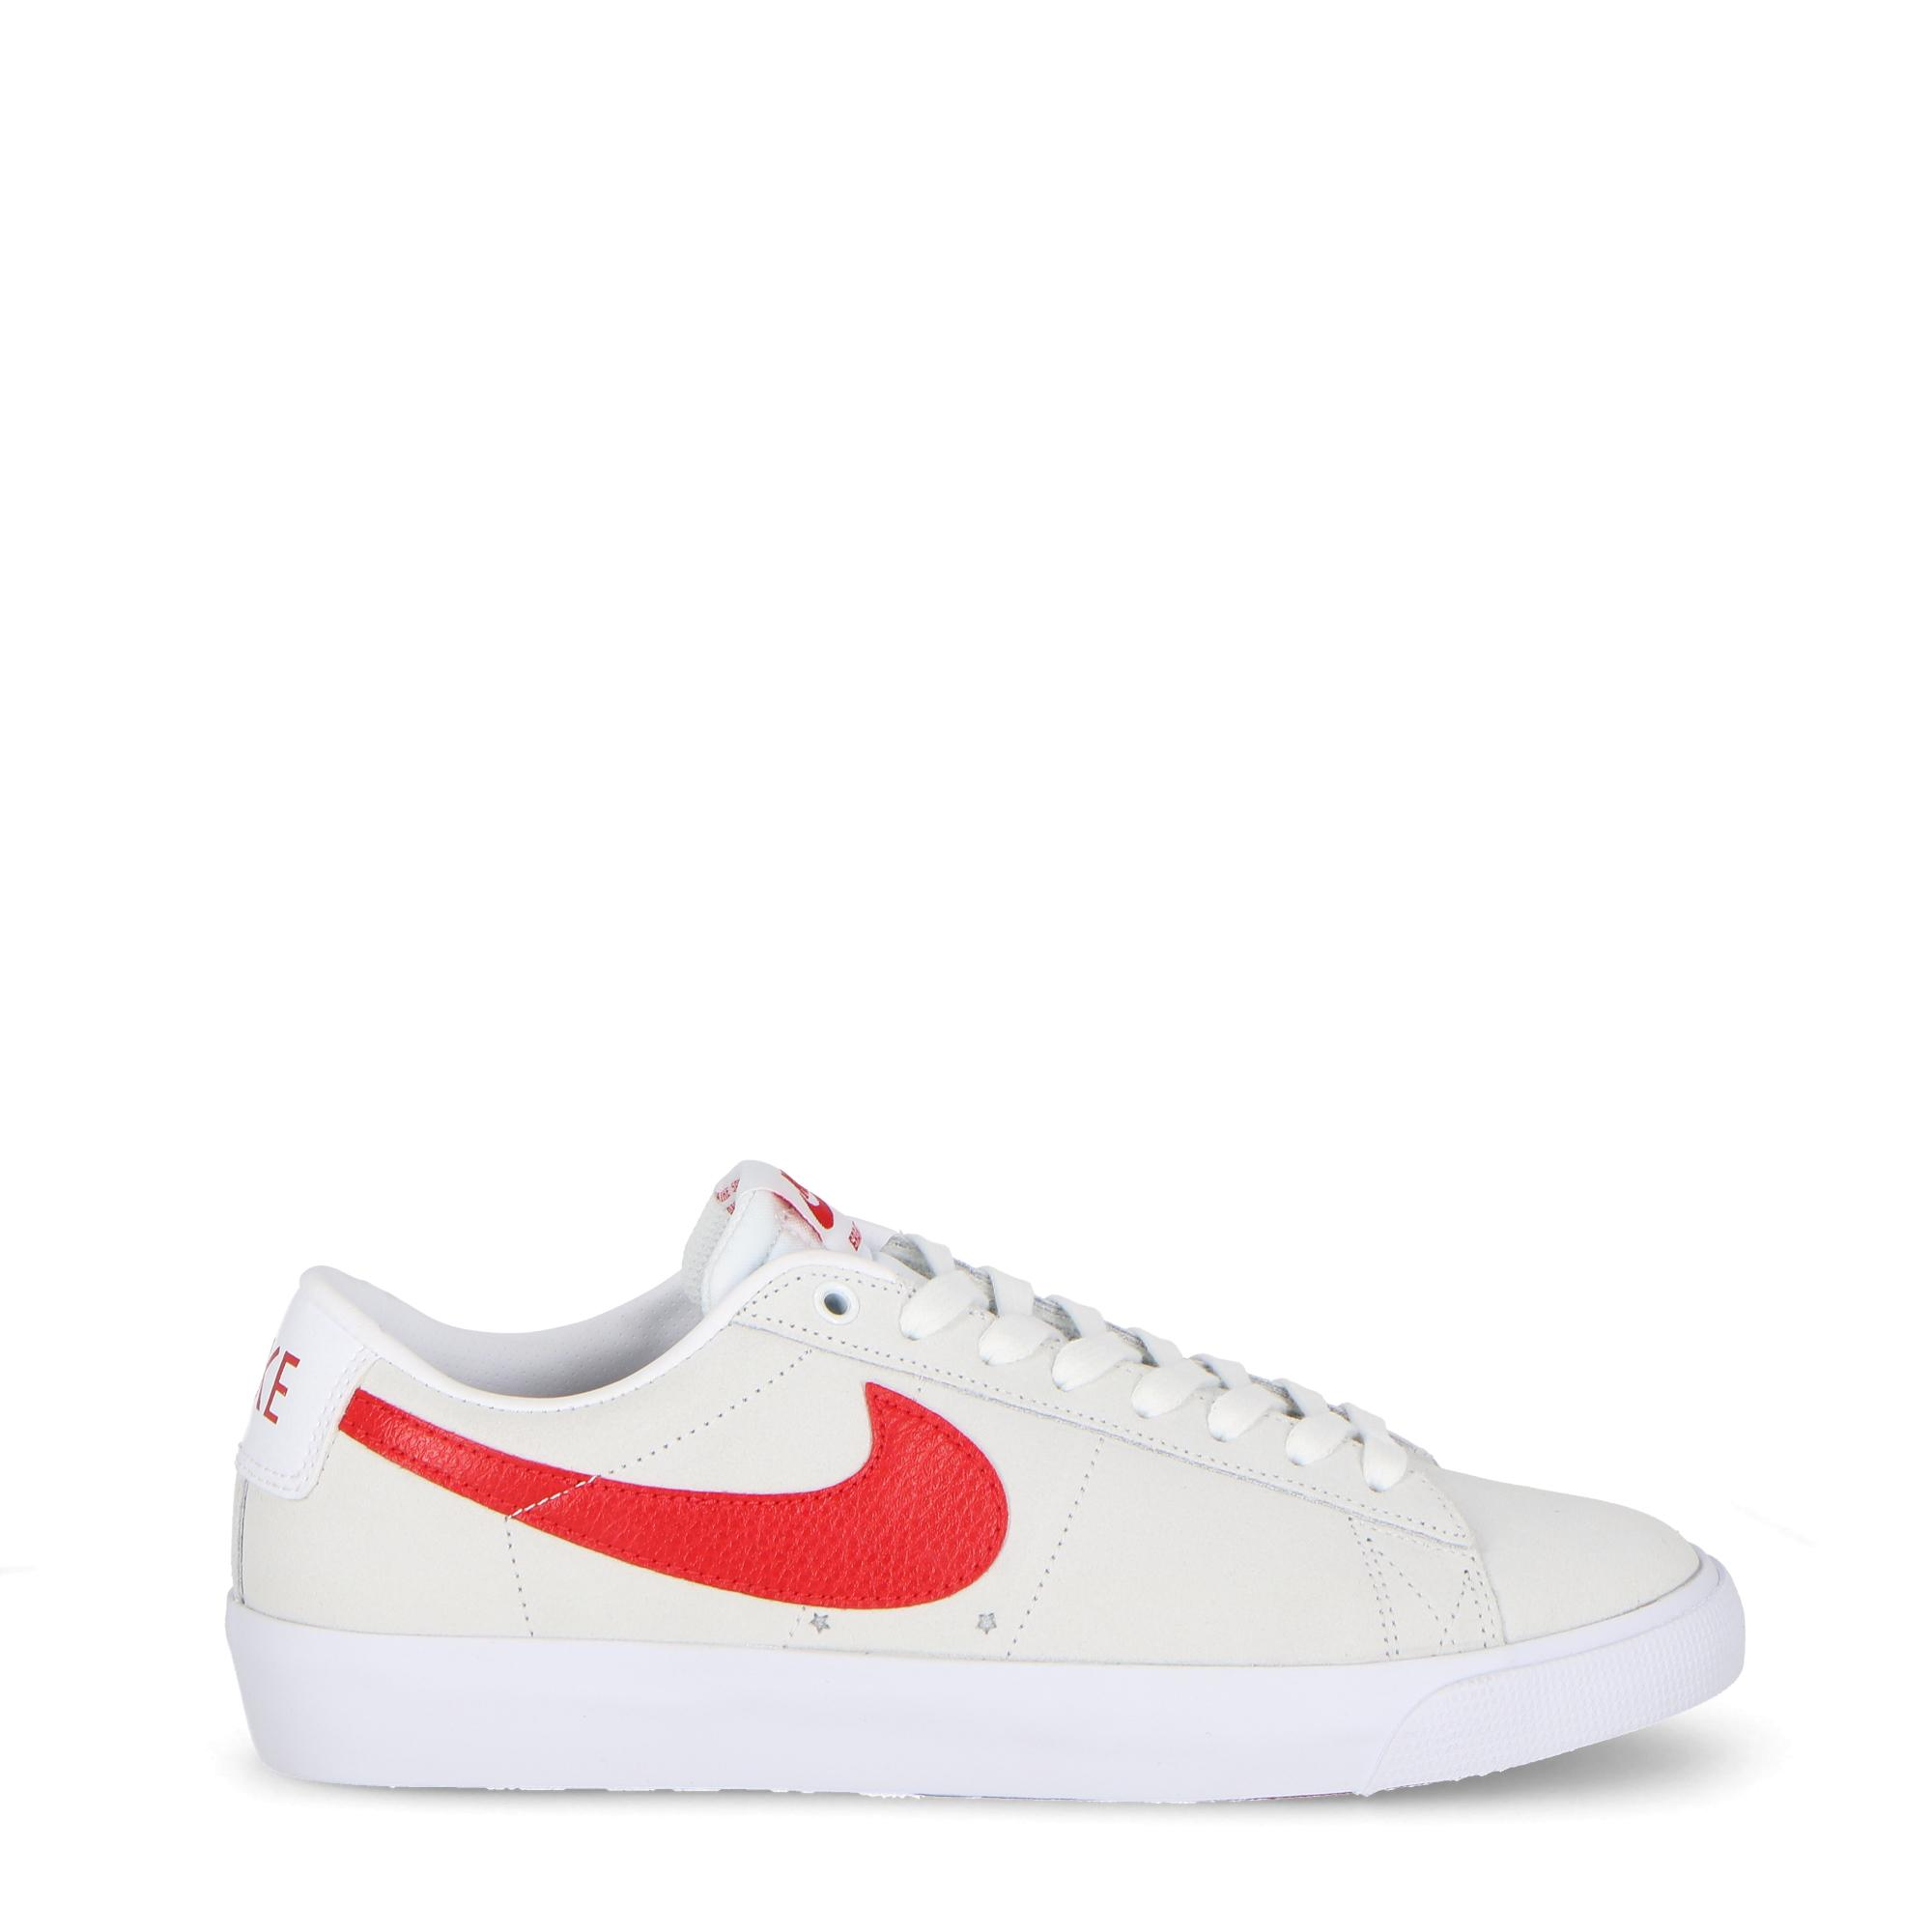 online store 7e0f6 4f869 Nike Sb Blazer Low Gt White university red